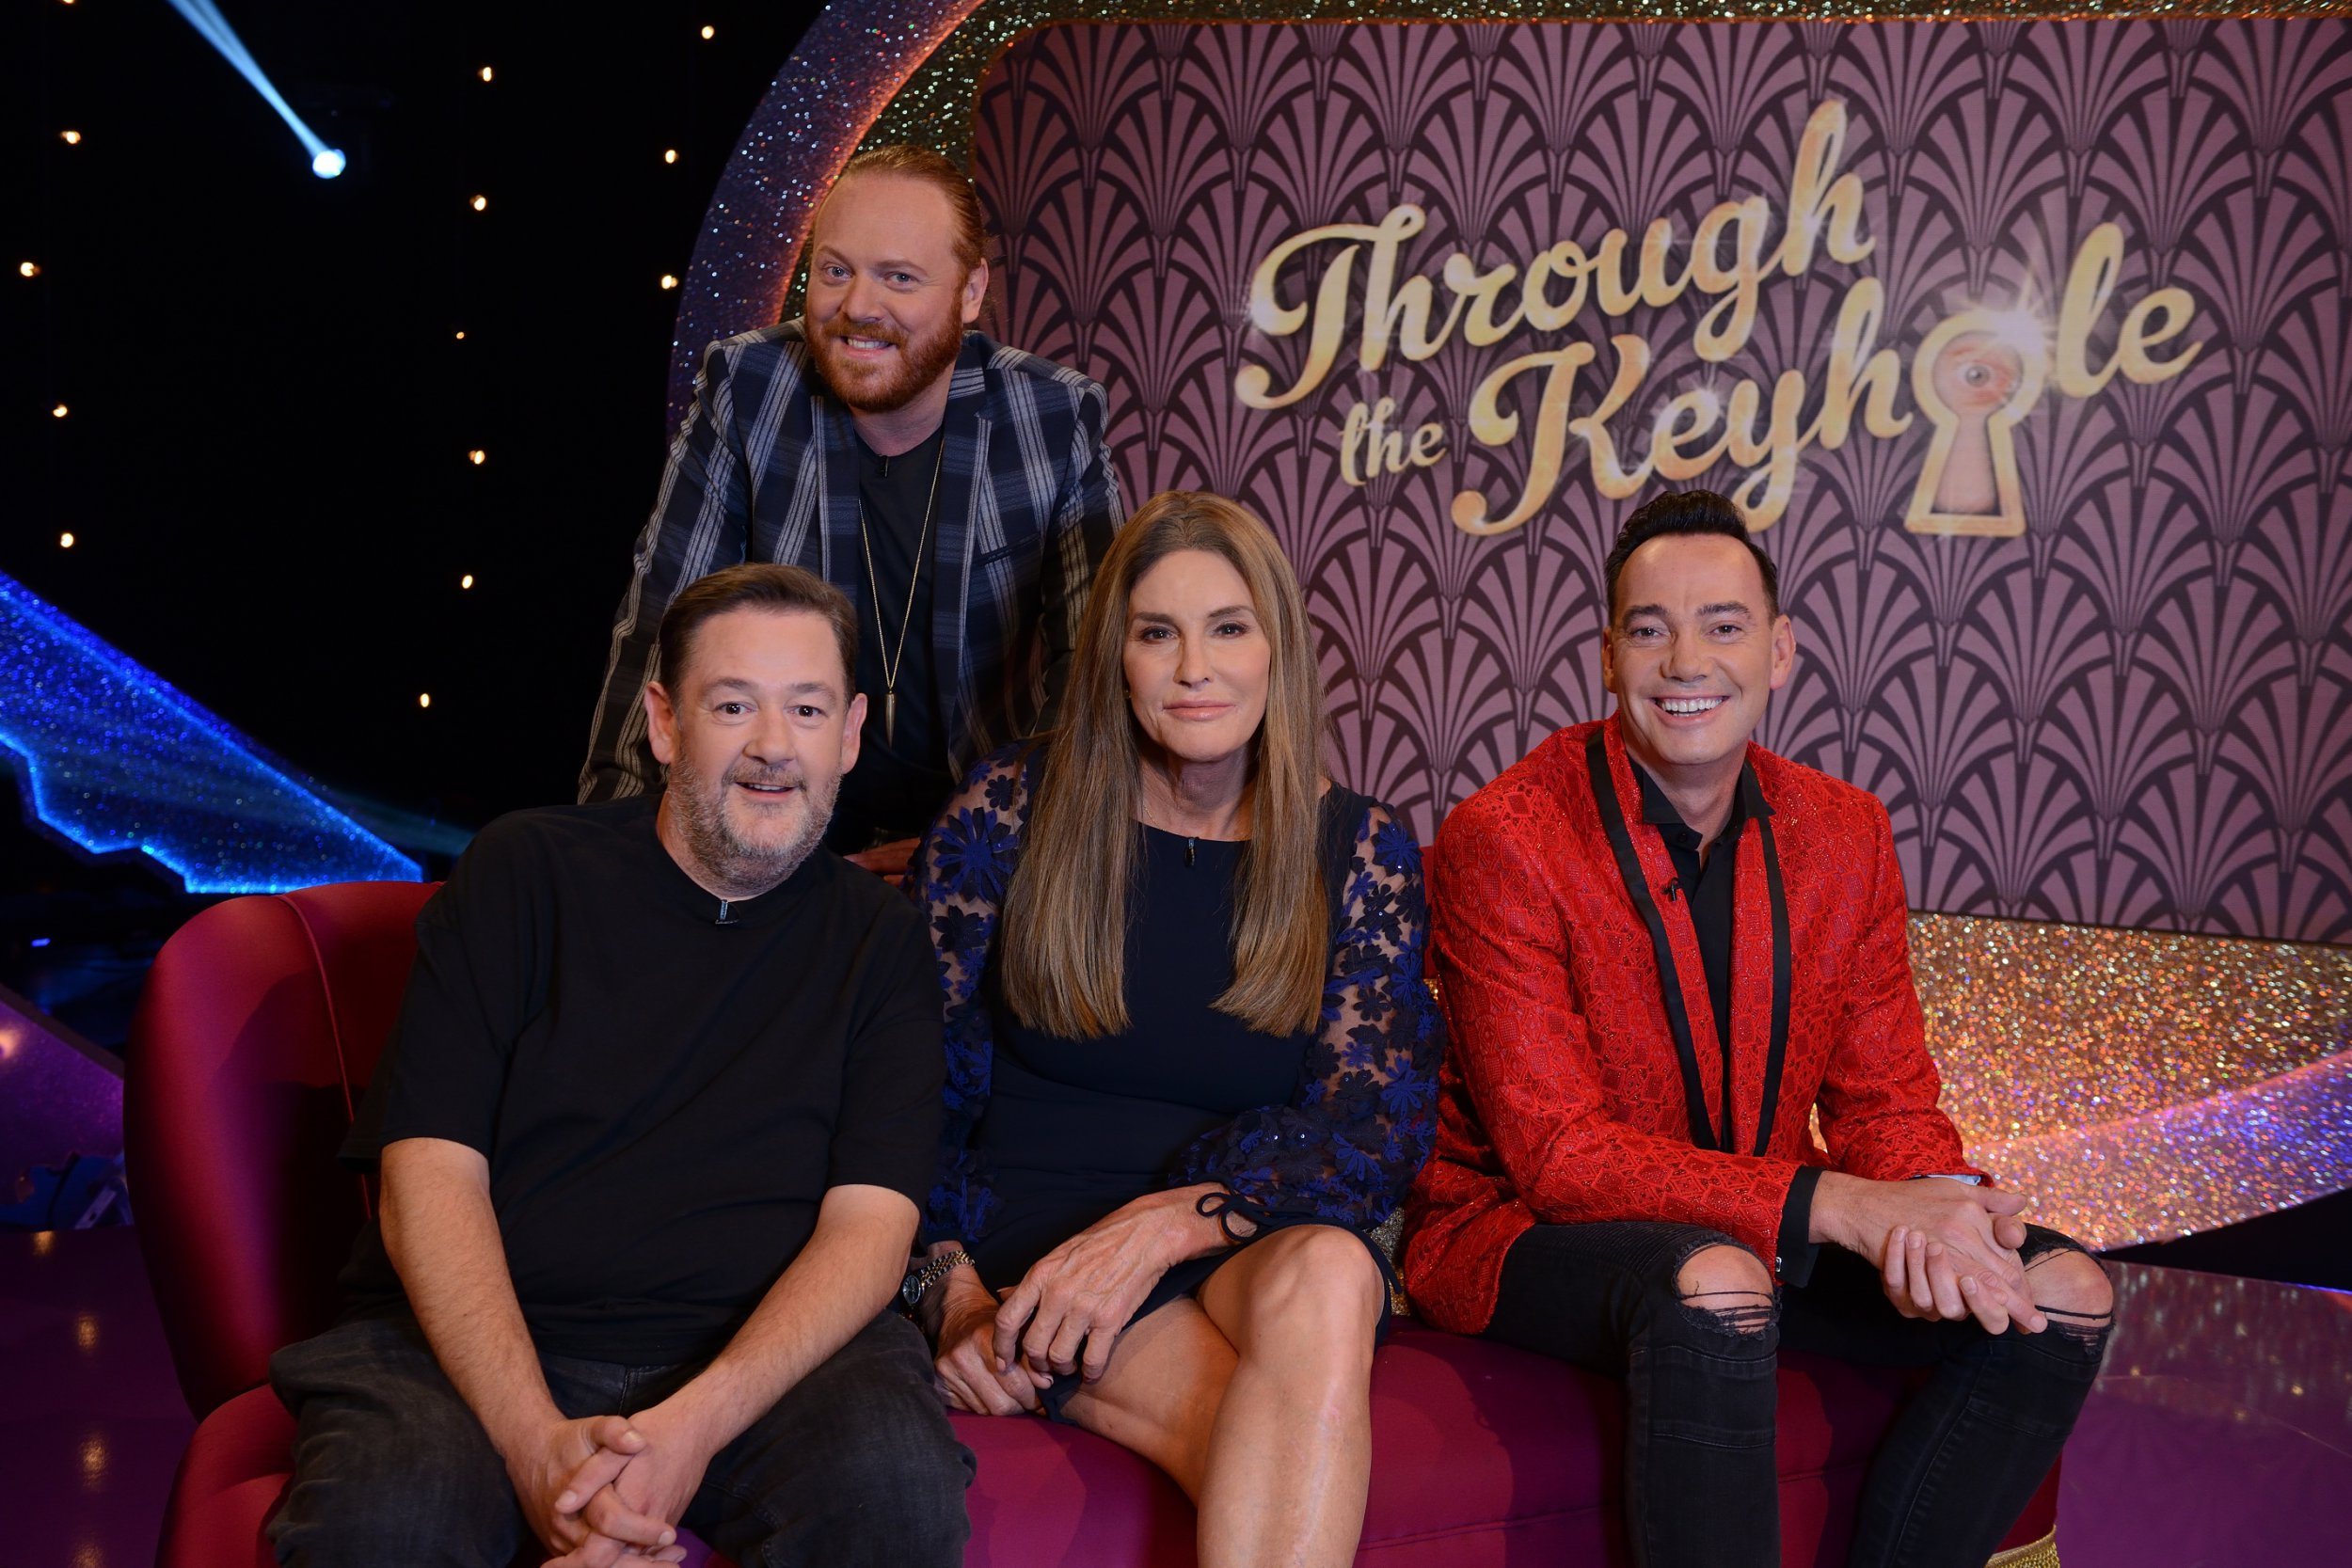 CAITLYN JENNER, DANNY DYER AND DANI DYER AMONGST CELEBRITY GUEST PANELLISTS ON NEW SERIES OF THROUGH THE KEYHOLE KEITH LEMON RETURNS AS HOST London, Monday 26th November 2018: Through the Keyhole (produced by Talkback, part of Fremantle) returns to ITV with an all-star line up of celebrity panellists joining host Keith Lemon, launching with a Christmas special on Friday 14th December at 9pm. Continuing into 2019 from January, this 8x60 series will see Keith let loose in the homes of mystery celebrities, unearthing clues to help the studio panel to guess ?who habitates in a house like this.? Star-studded panellists across the series include Caitlyn Jenner, Danny Dyer, Dani Dyer, Carol Vorderman, Paddy McGuinness, Martin Kemp, Craig Revel Horwood and Stacey Solomon. Jimmy Carr, Lorraine Kelly and Jonathan Ross make up a stellar line-up on the Christmas special. Keith Lemon commented: ?Nowt better than kicking off with a Christmas special of a show ya love doing. Can't believe the next series is the 6th! We've changed fings a little bit this series. We won?t be showing the audience at home whose house it is beforehand so they can now play along with our celebrity panel. We have got a great panel this series as well as some ace houses!? Through the Keyhole is a Talkback production for ITV, Comedy Controller Saskia Schuster. The Executive Producers are Leon Wilson and Ed Sleeman. The Series Producer is Isabel Forte. -ENDS-